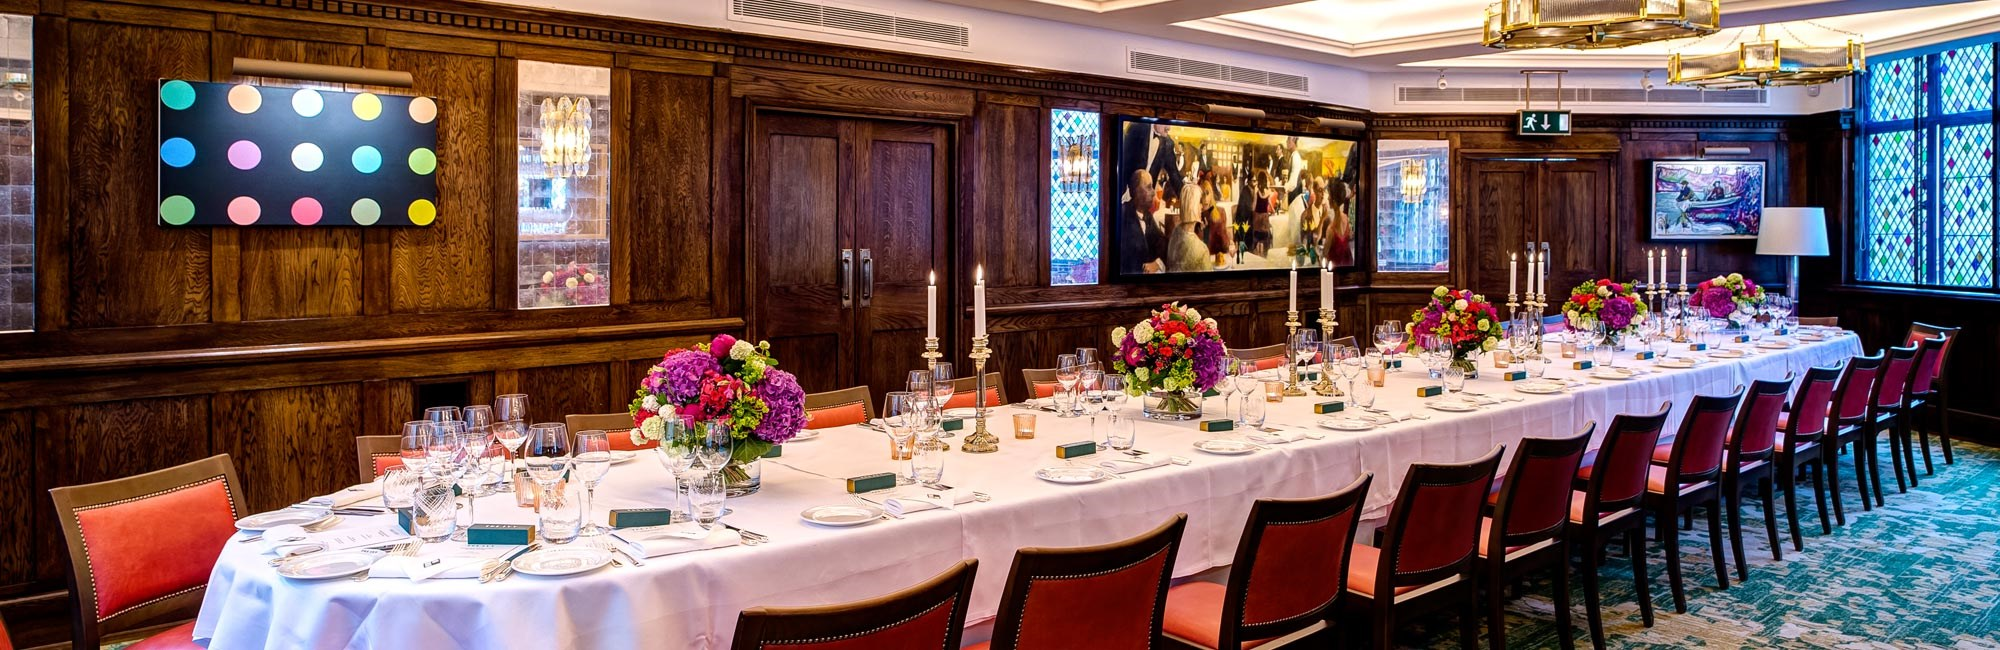 The ivy private dining room table by paul winch furness for Table 52 private dining